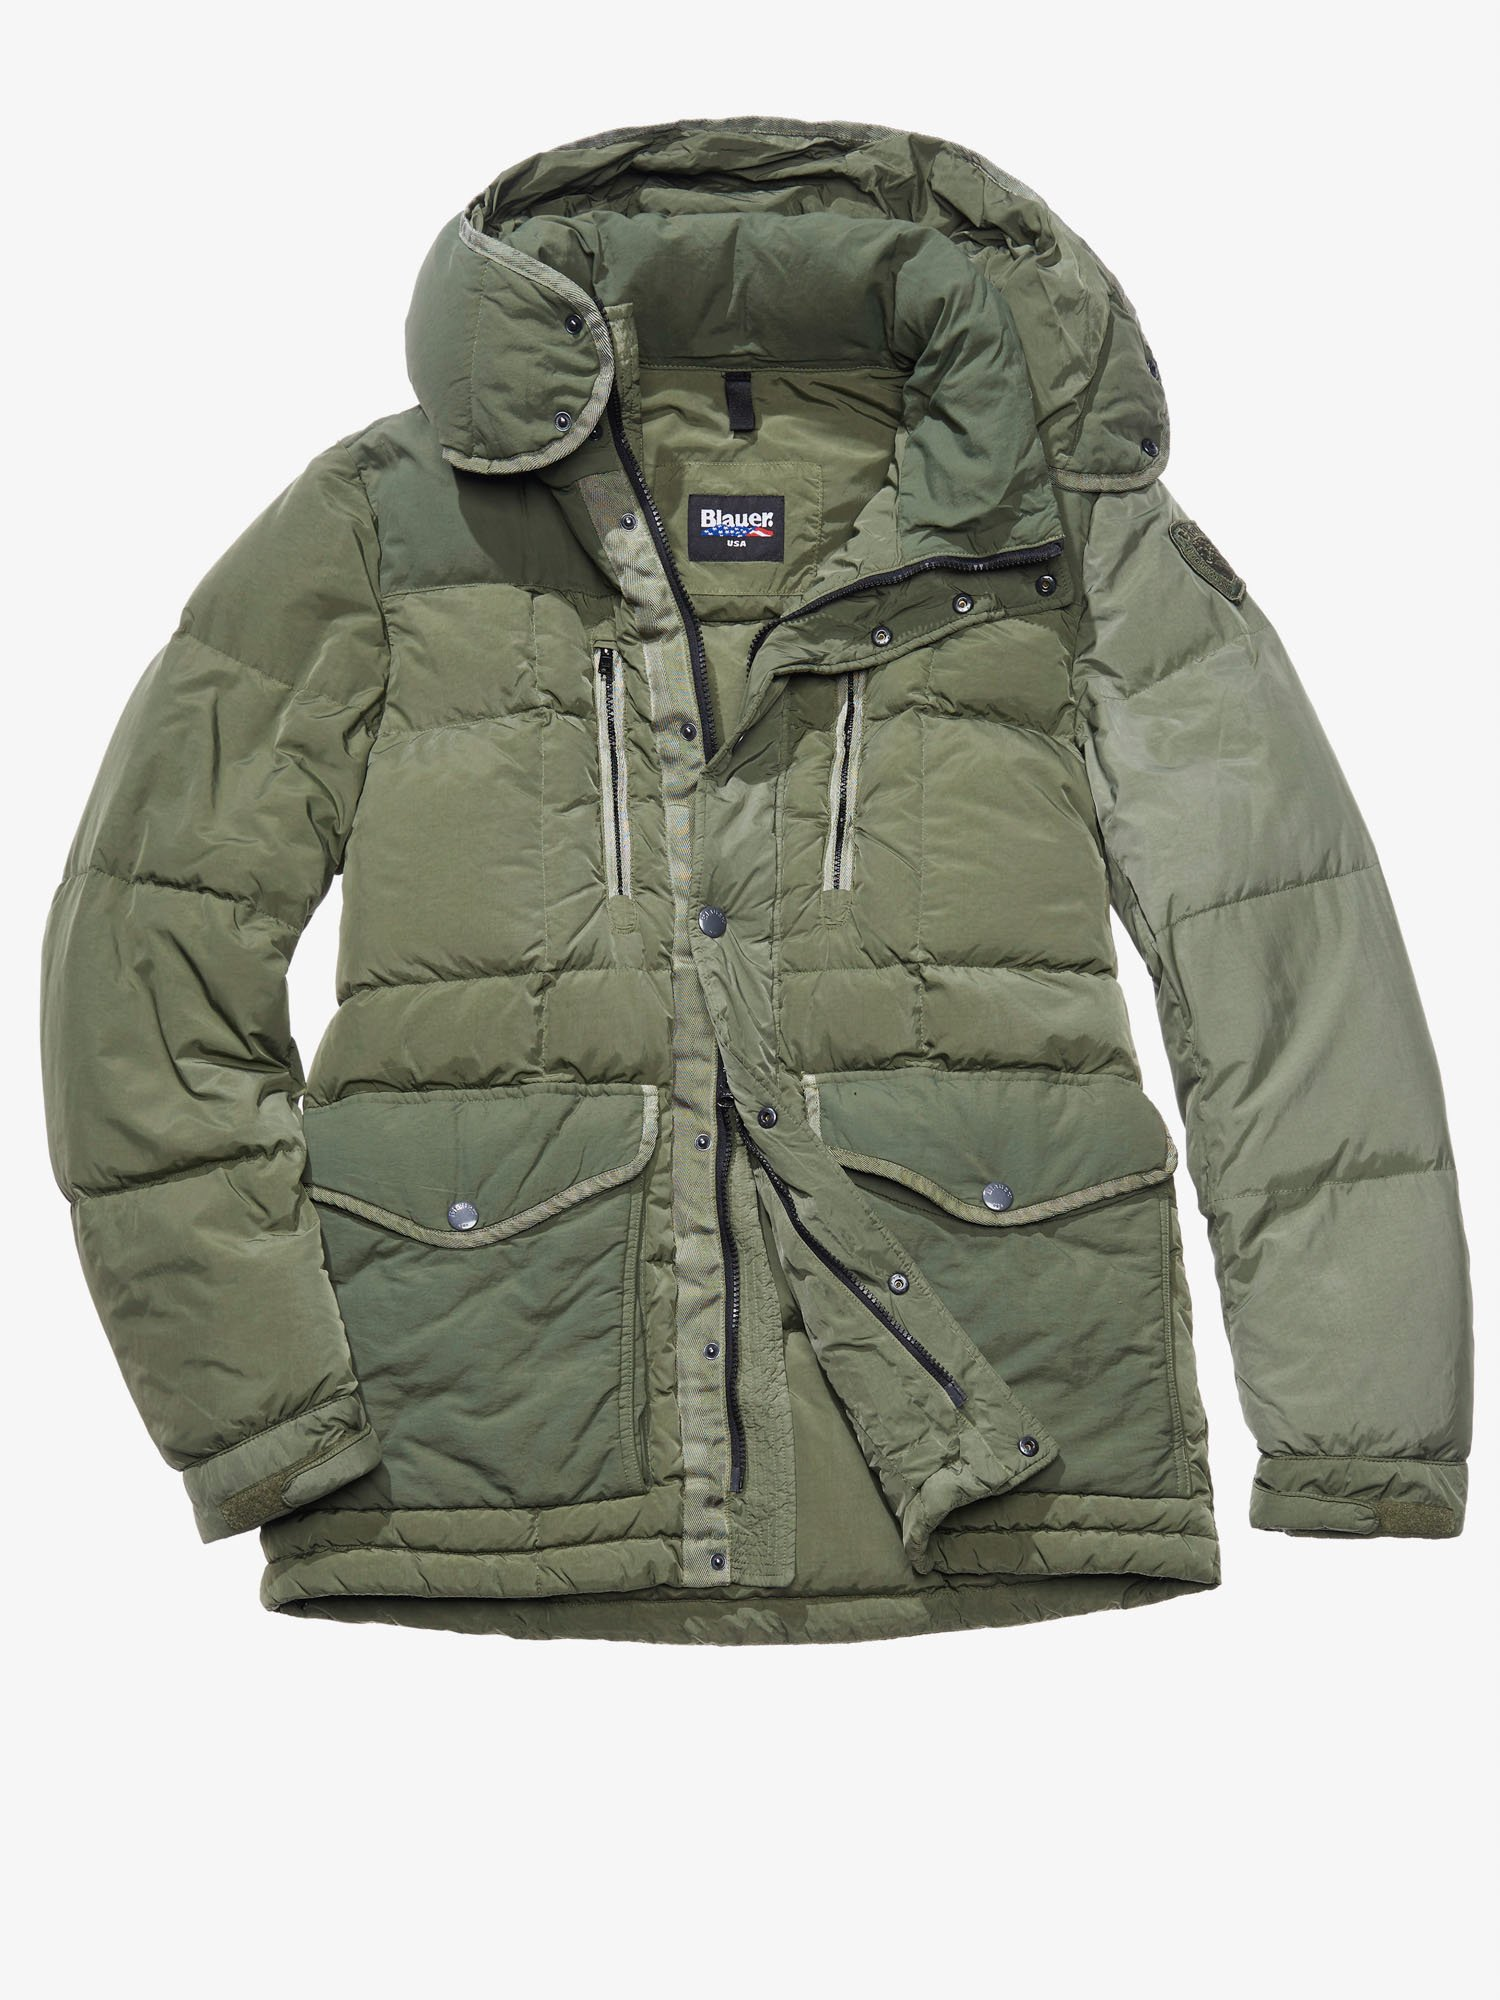 Blauer - FRANCESCO MILITARY-STYLE DOWN COAT - Kombu Algae - 1 ... 3ae0e3e8396